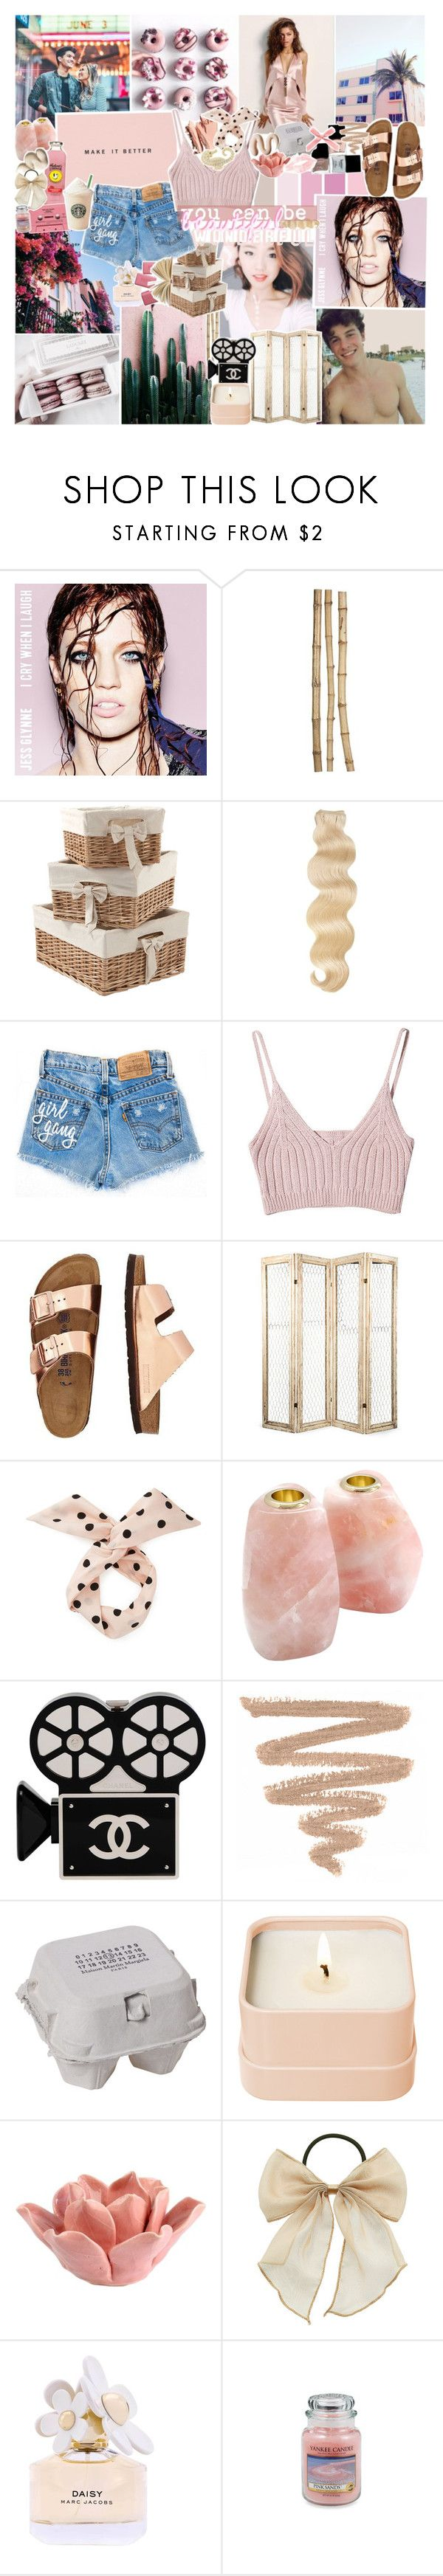 """""""✿ wish i knew back then what i know now"""" by styleboy ❤ liked on Polyvore featuring Crate and Barrel, Mamas & Papas, StyleNanda, TravelSmith, Forever 21, RabLabs, Chanel, Maison Margiela, Henri Bendel and HomArt"""